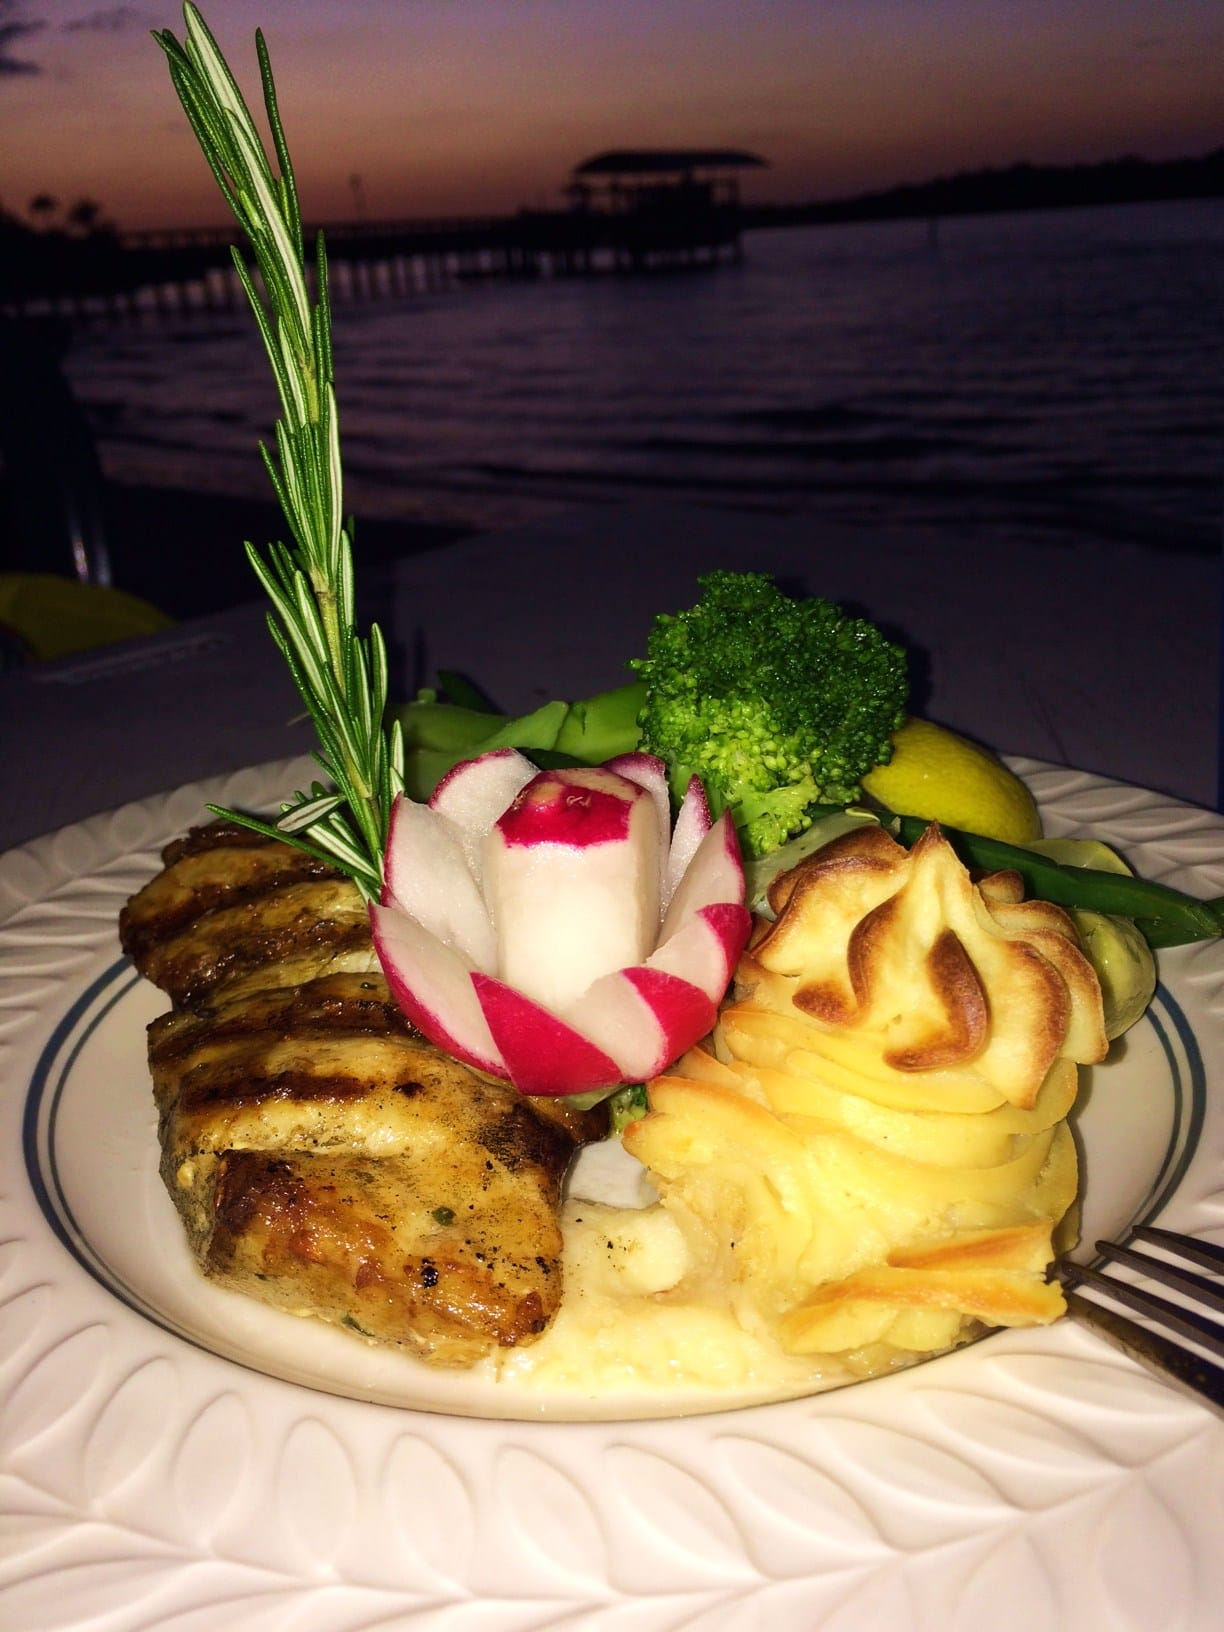 Capri Fish House Grilled Grouper with mashed potatoes and veggies